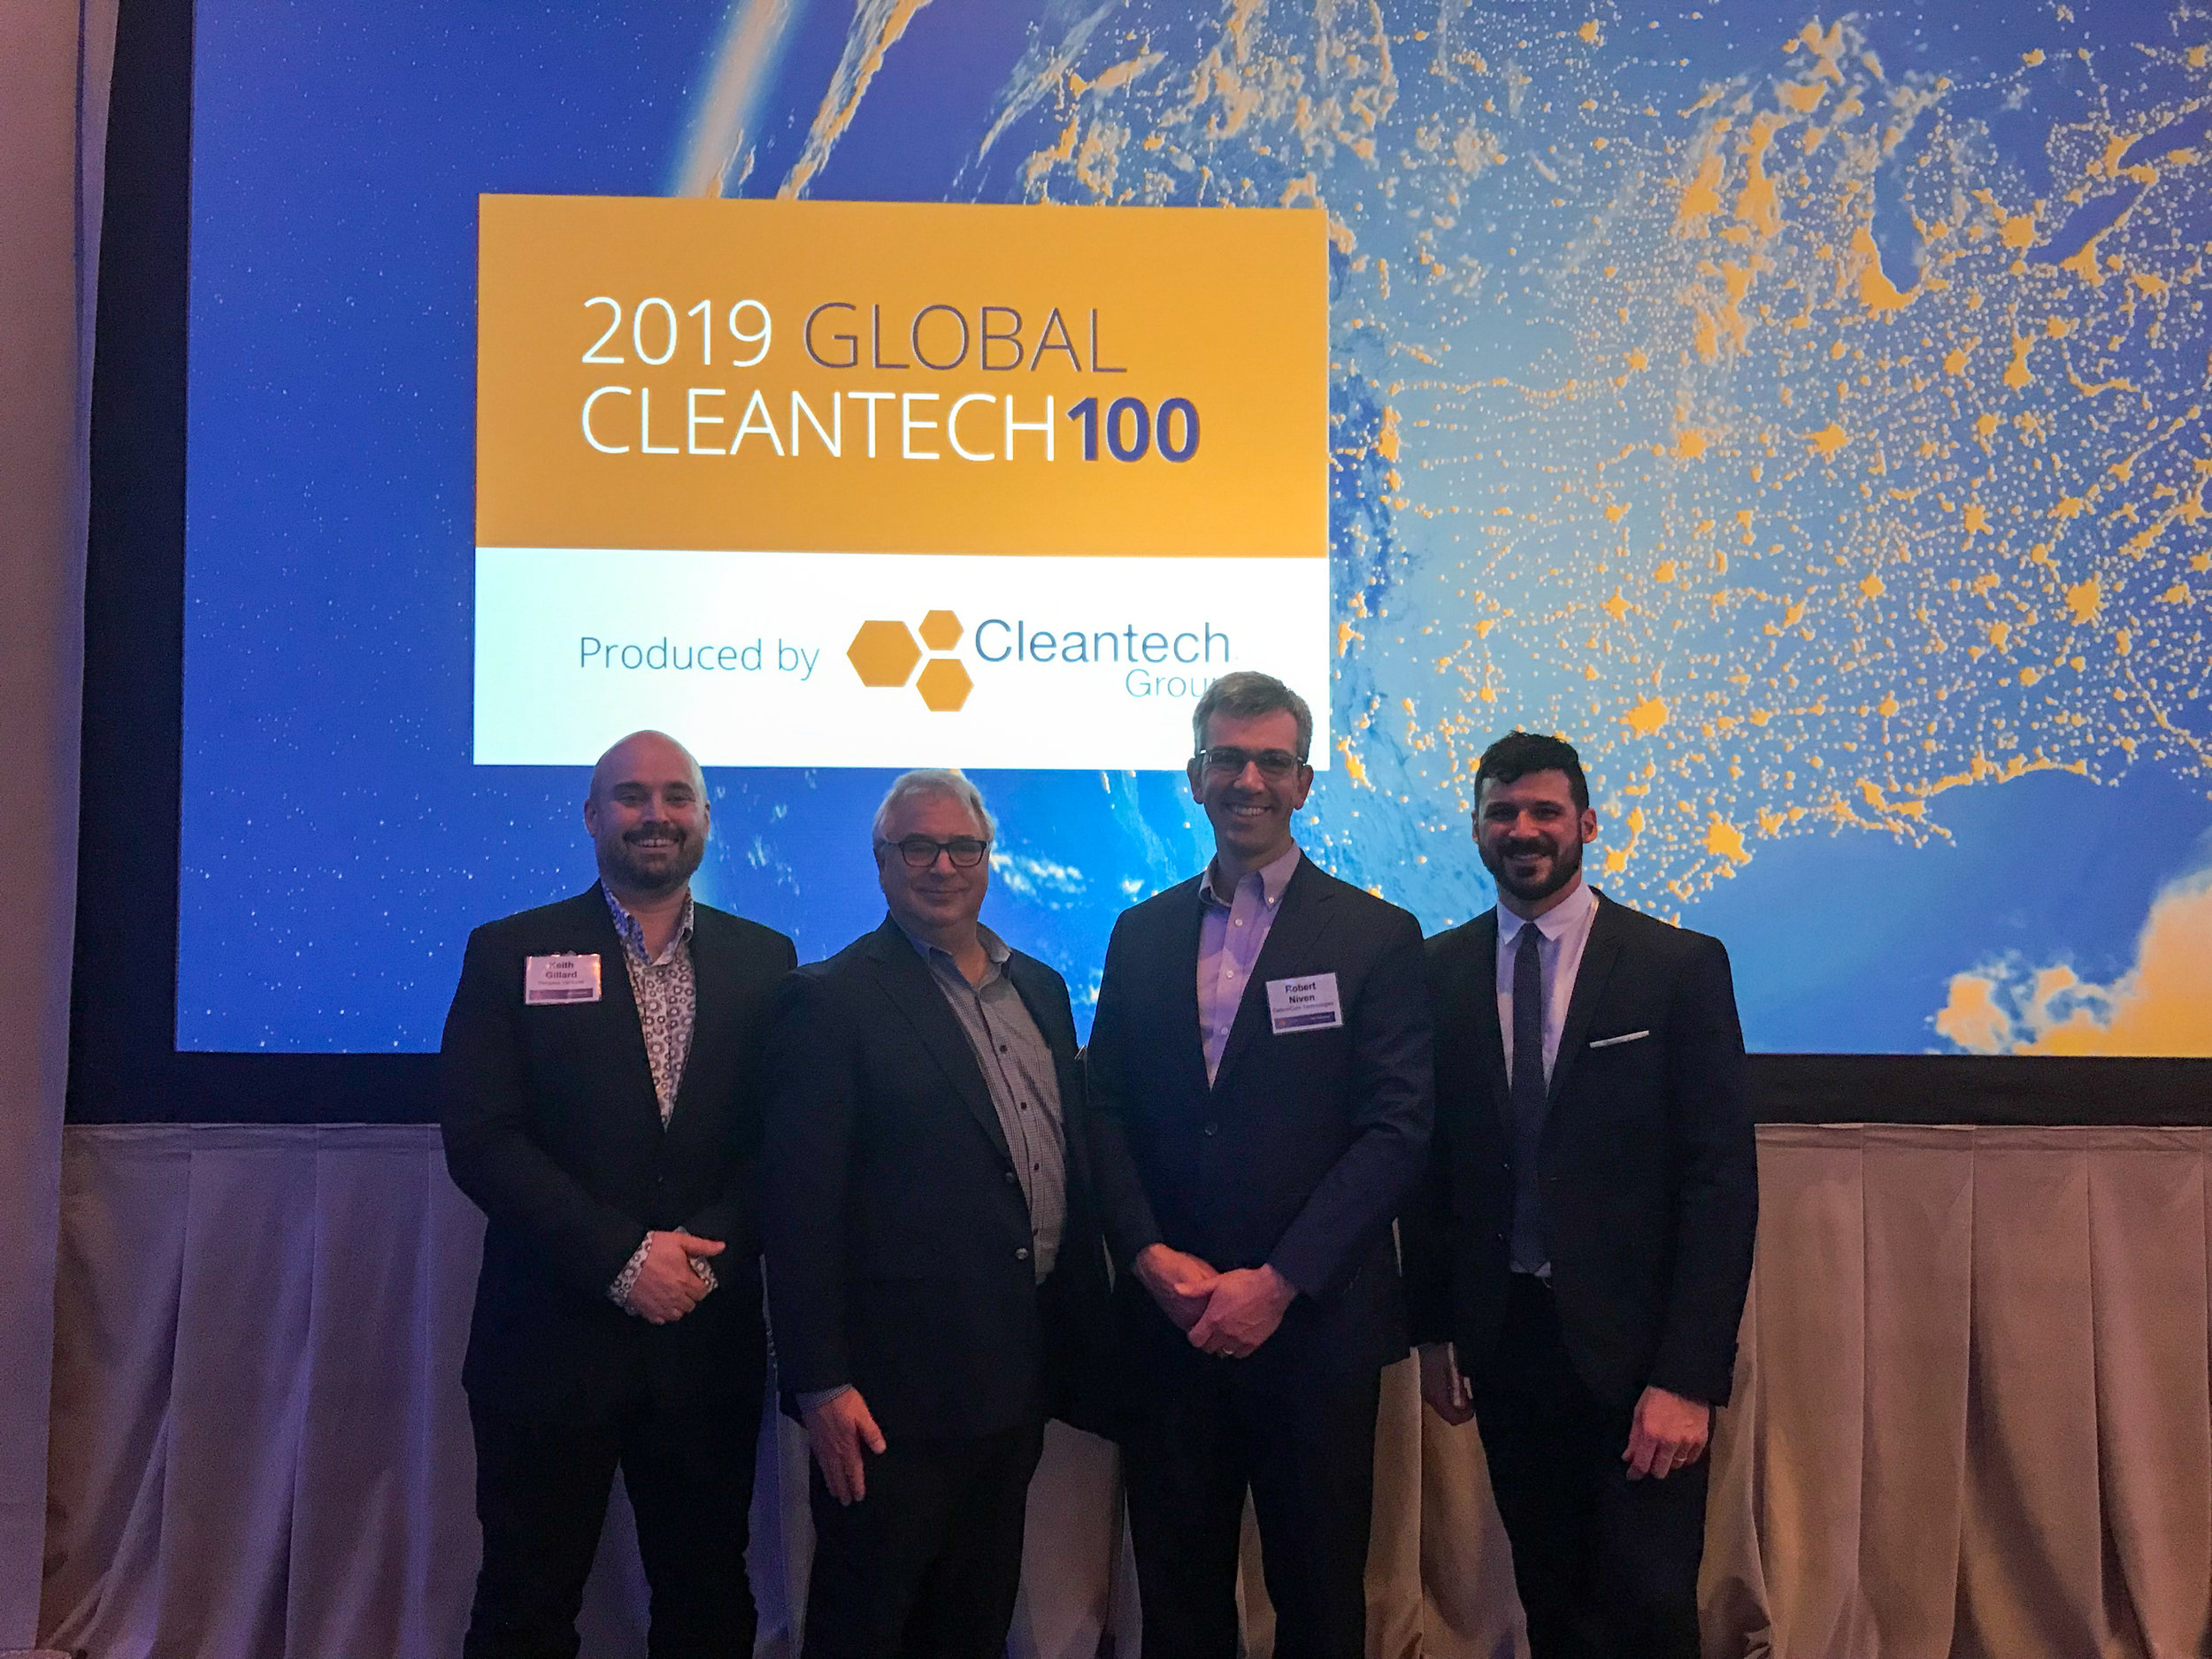 Keith Gillard (Pangea Ventures), Tony Van Brommel (BDC Capital's ICE Fund), Robert Niven (CarbonCure's CEO and Founder) and Pascal-Hugo Plourde (Sustainable Development Technology Canada) at the 17th annual Cleantech Forum in San Francisco.